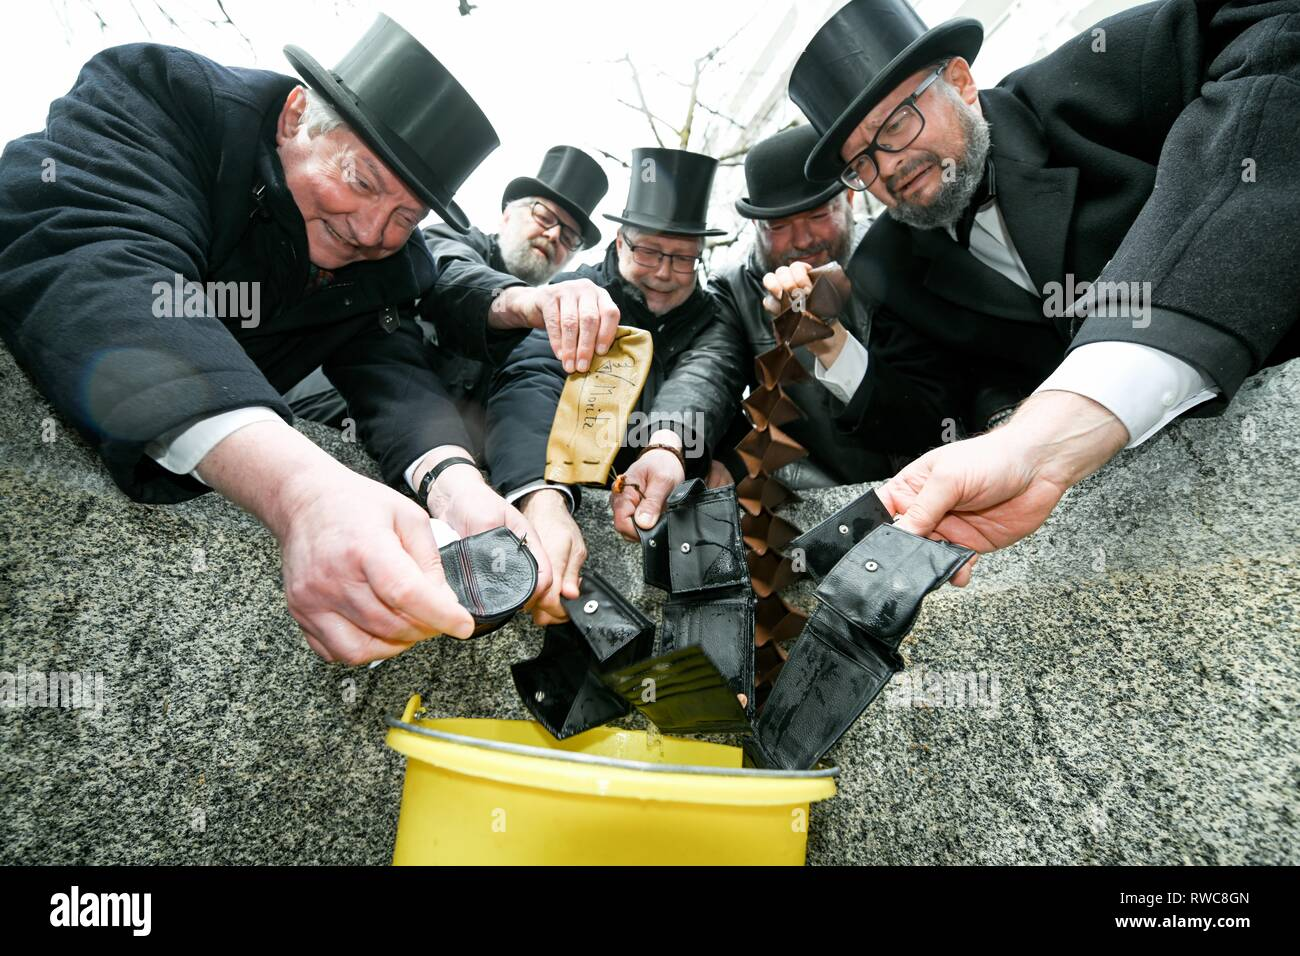 Friedrichshafen, Germany. 06th Mar, 2019. Mourning fools in tail coats and with top hats cry after the traditional purse laundry of the past carnival. Following the customs, the fools wash their wallets on Ash Wednesday in the fountain of the Friedrichshafen district Hofen. Credit: Felix Kästle/dpa/Alamy Live News - Stock Image